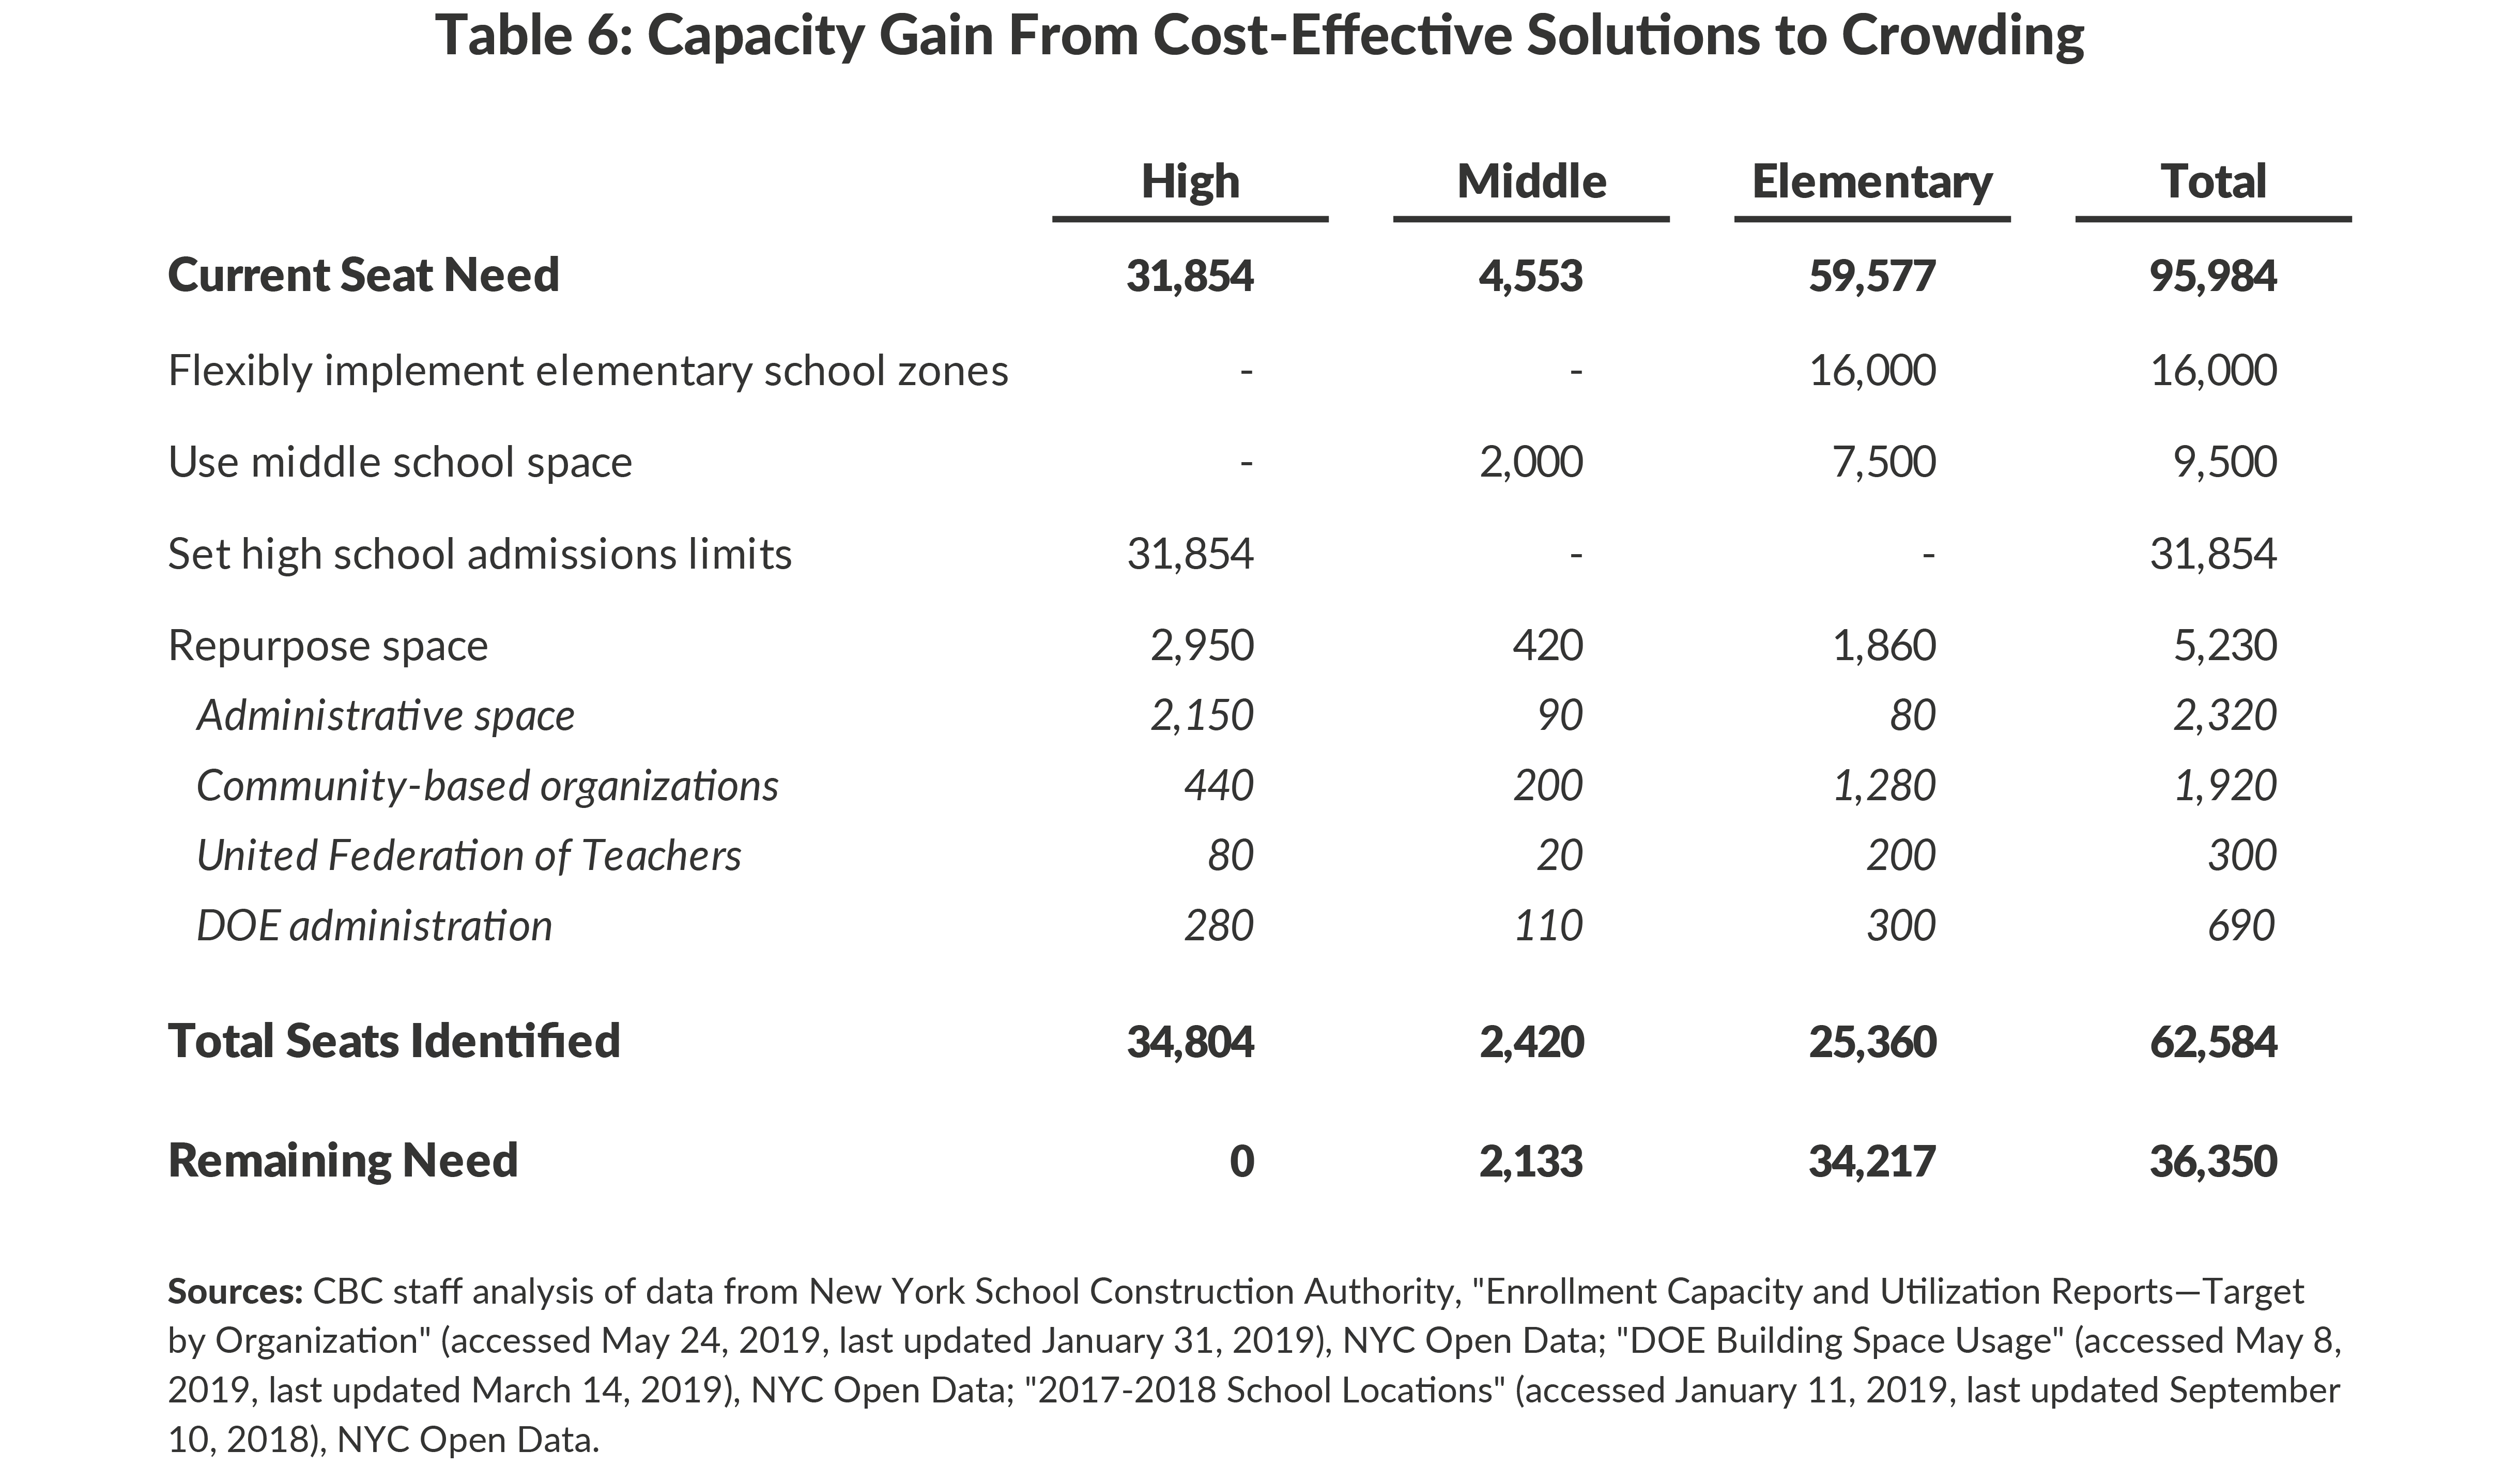 Table 6: Capacity Gain From Cost-Effective Solutions to Crowding